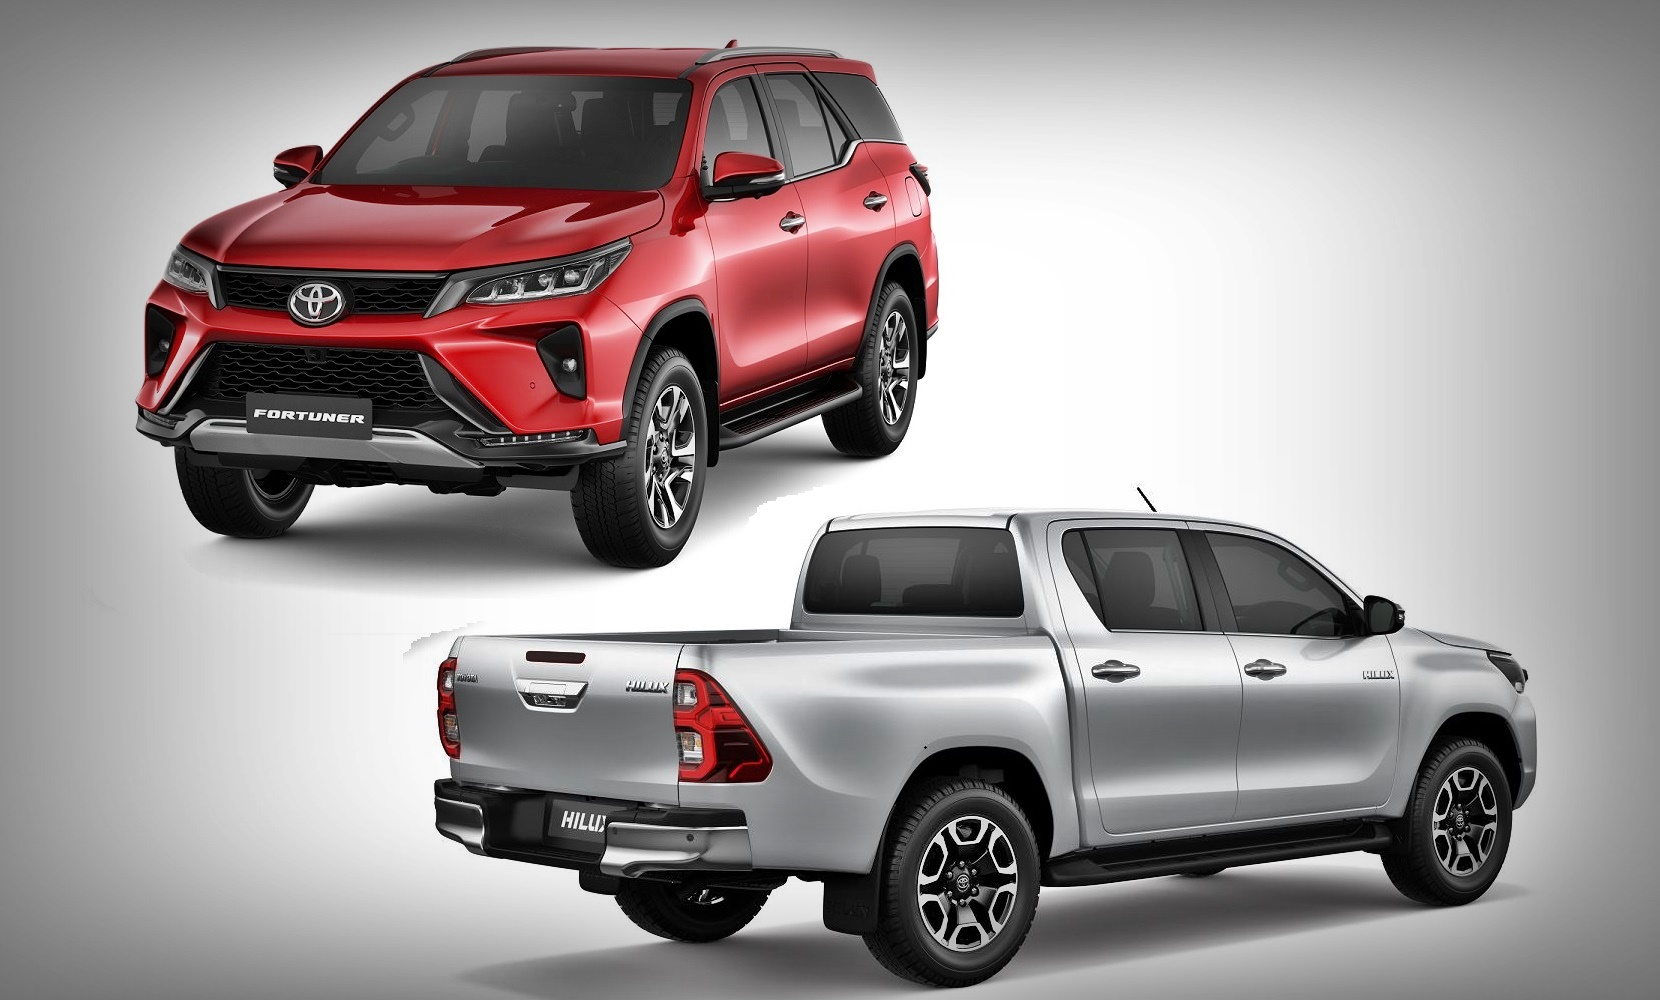 2020 Toyota Fortuner and Hilux